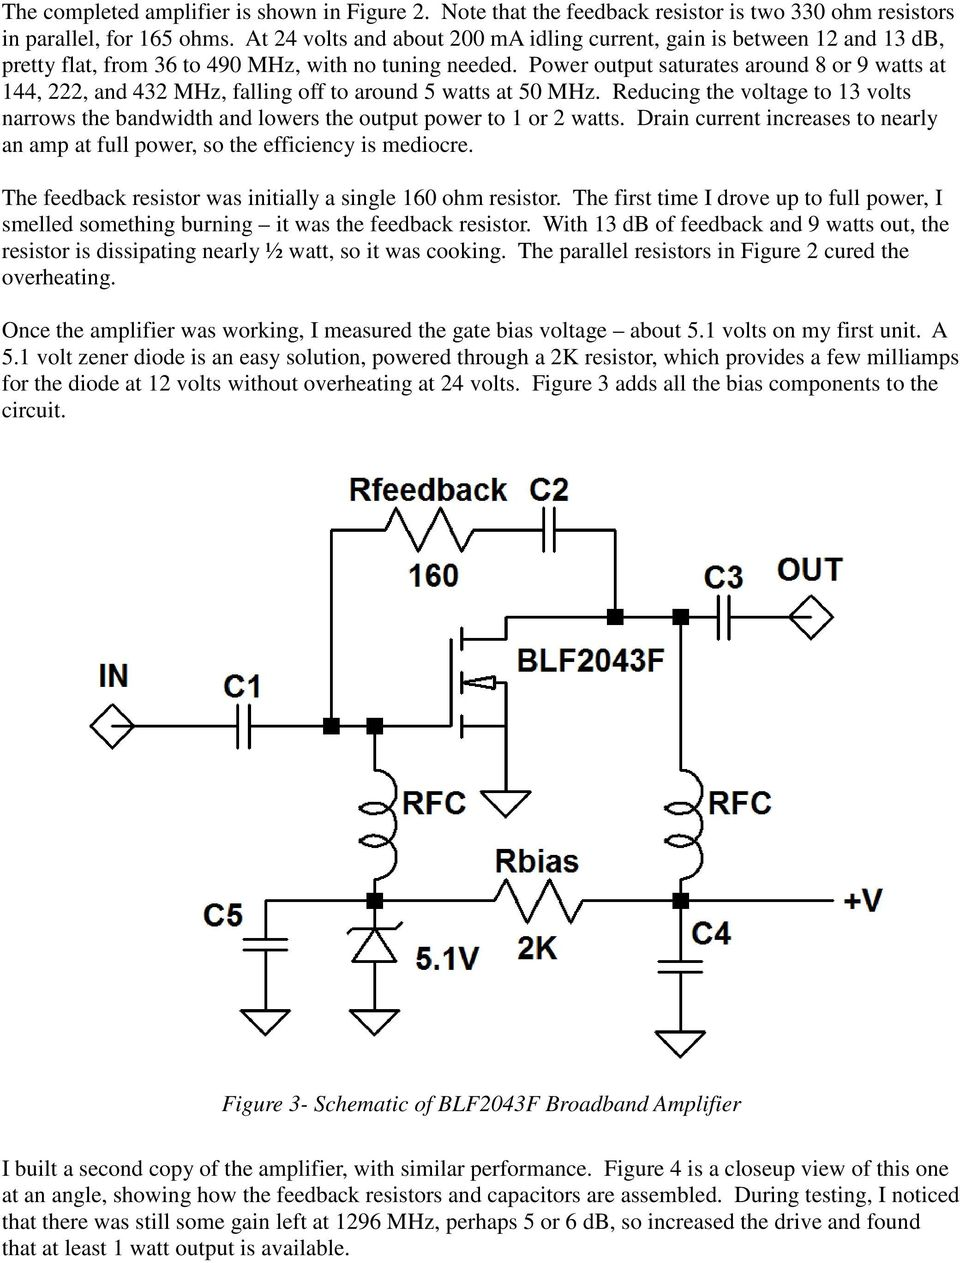 Simple Broadband Solid State Power Amplifiers Pdf 88 108 Mhz 20w Amplifier Circuit Diagram Electronic Circuits Output Saturates Around 8 Or 9 Watts At 144 222 And 432